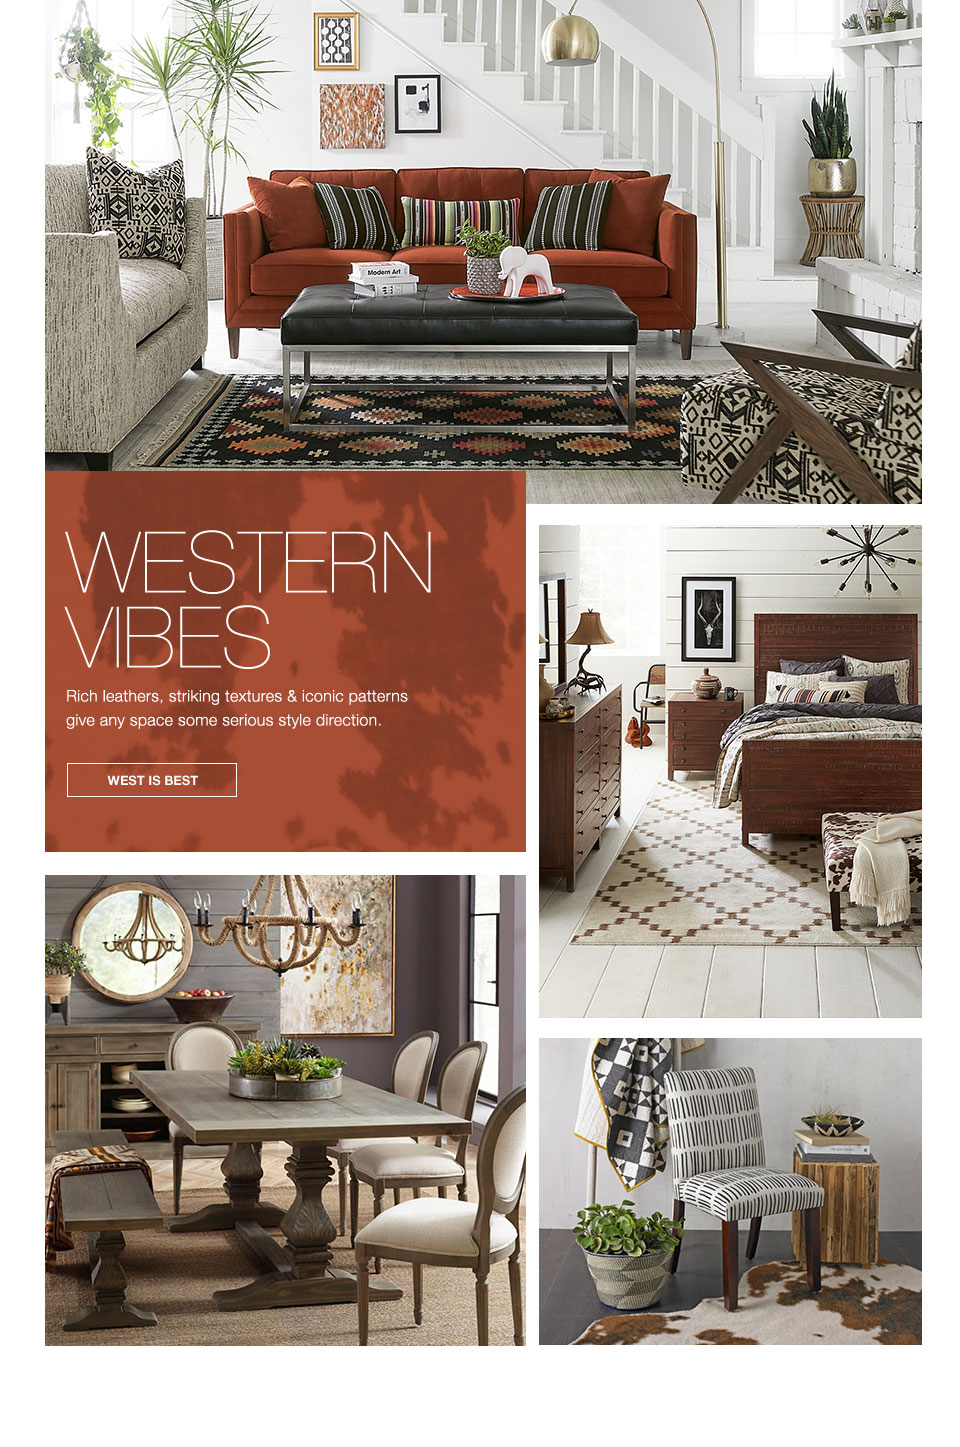 WESTERN VIBES. Rich leathers, striking textures and iconic patterns give any space some serious syle direction.